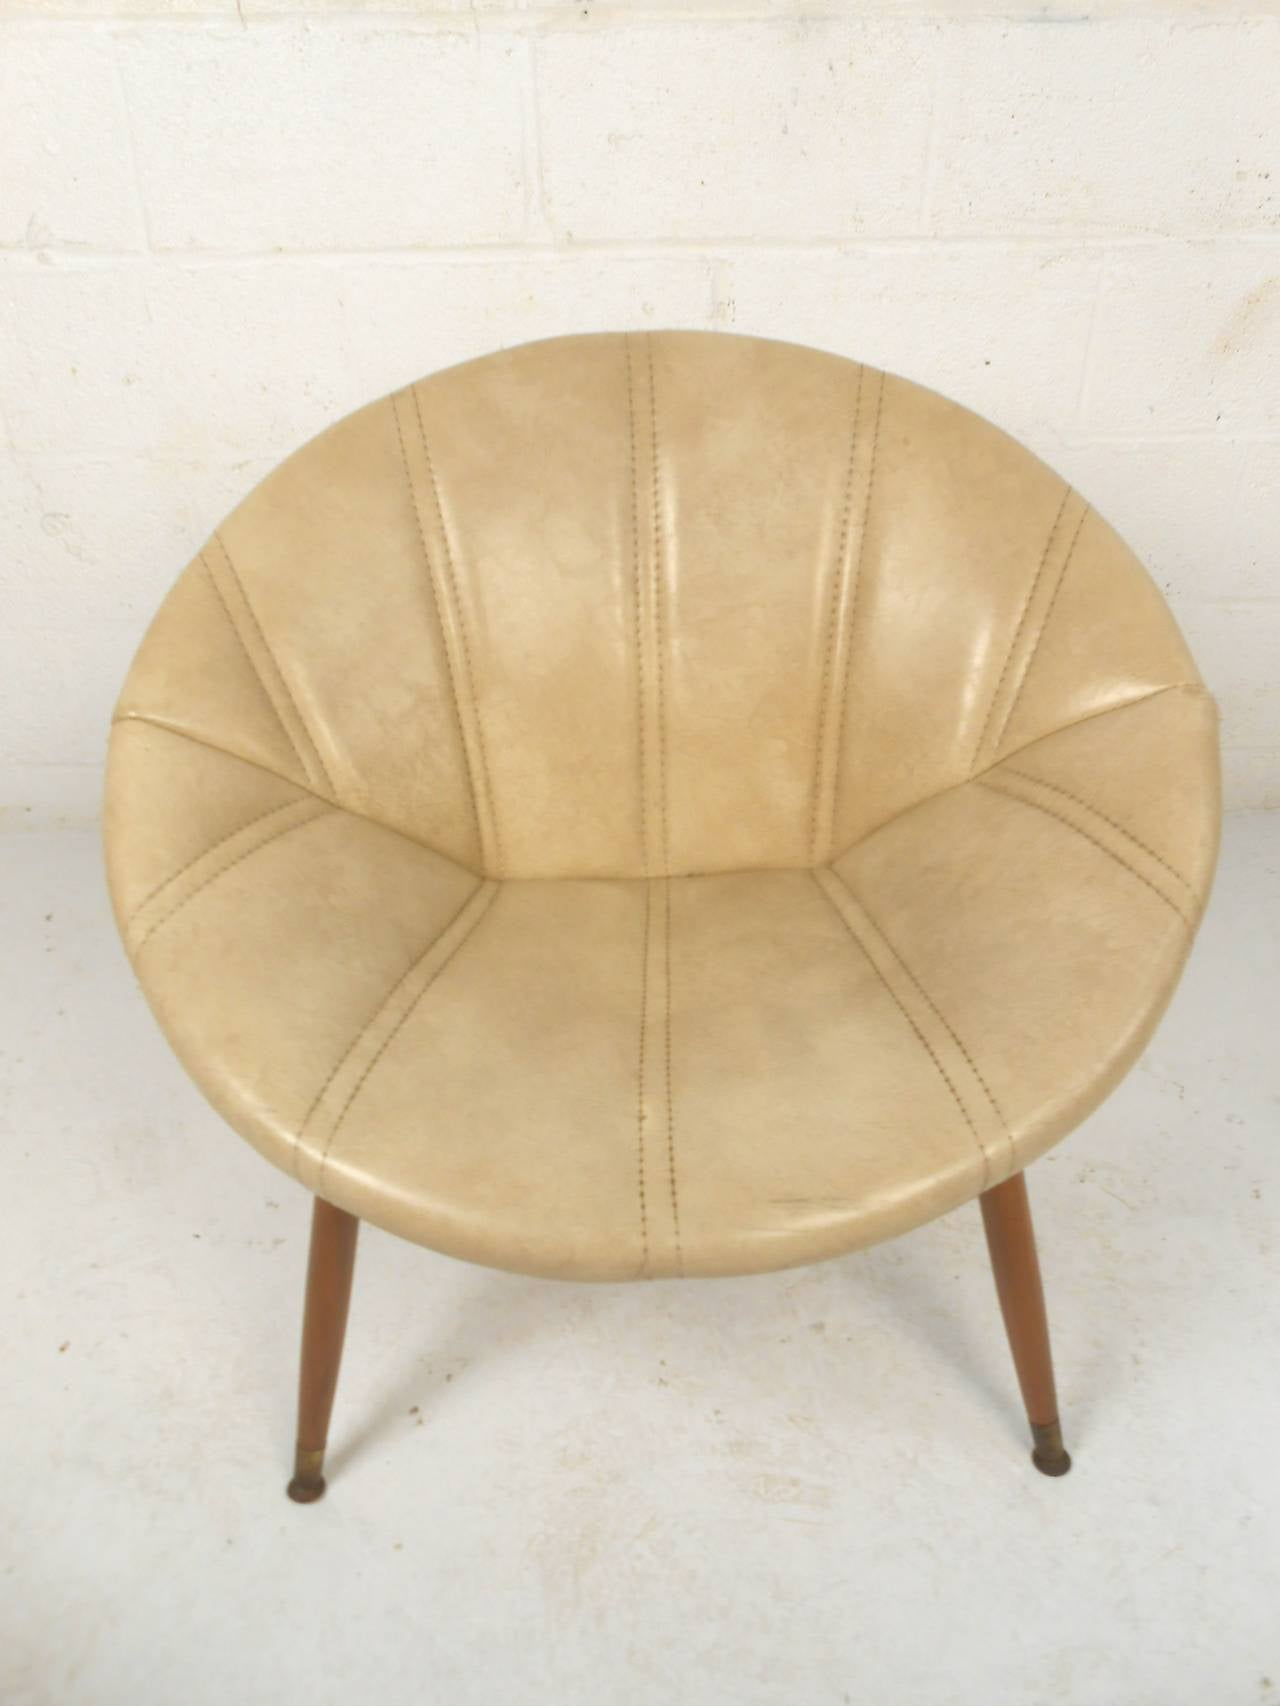 1960s Wicker Saucer Chair   Bring It On Home